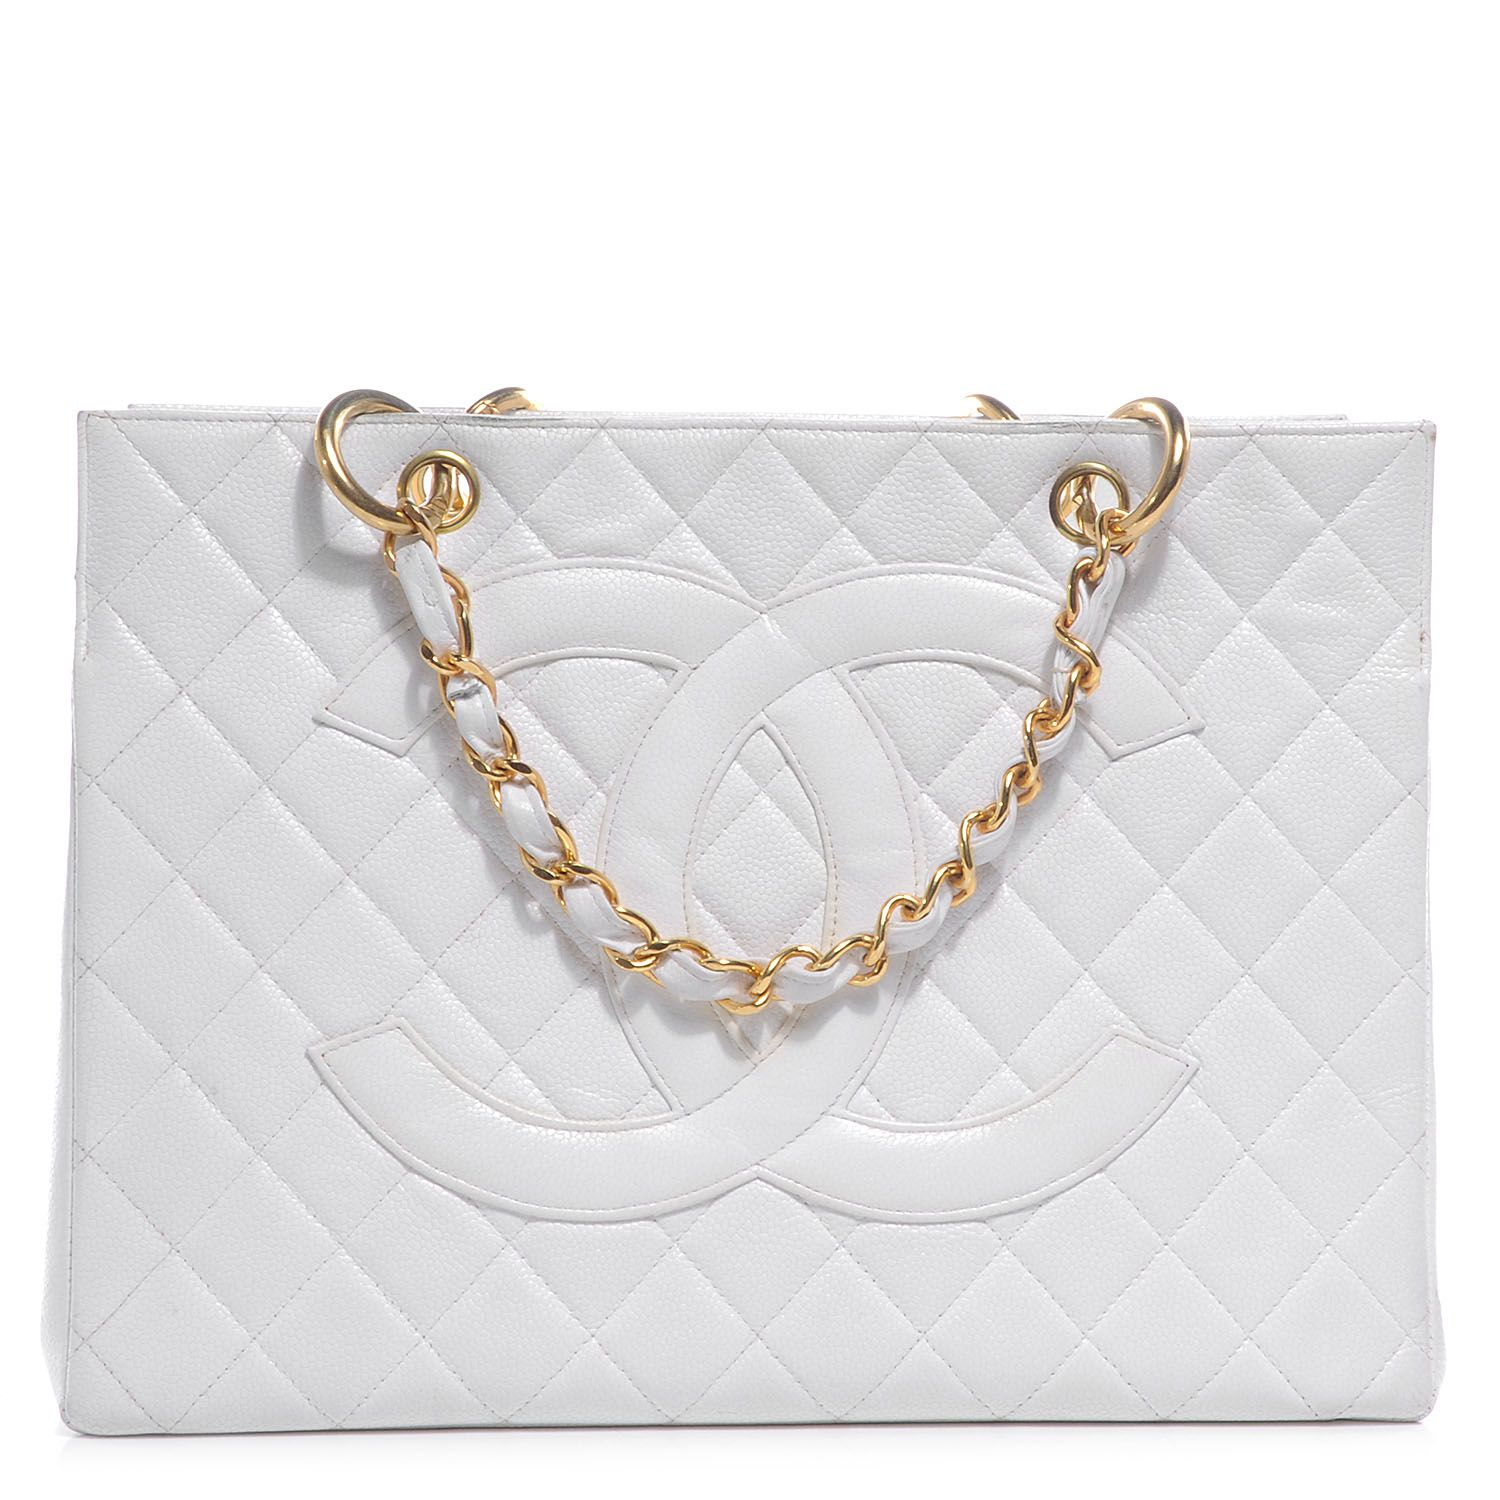 de460d9b9a46 This is an authentic CHANEL Vintage Caviar Grand Shopping Tote GST in White.  This stunning tote is beautifully crafted of luxurious diamond quilted white  ...